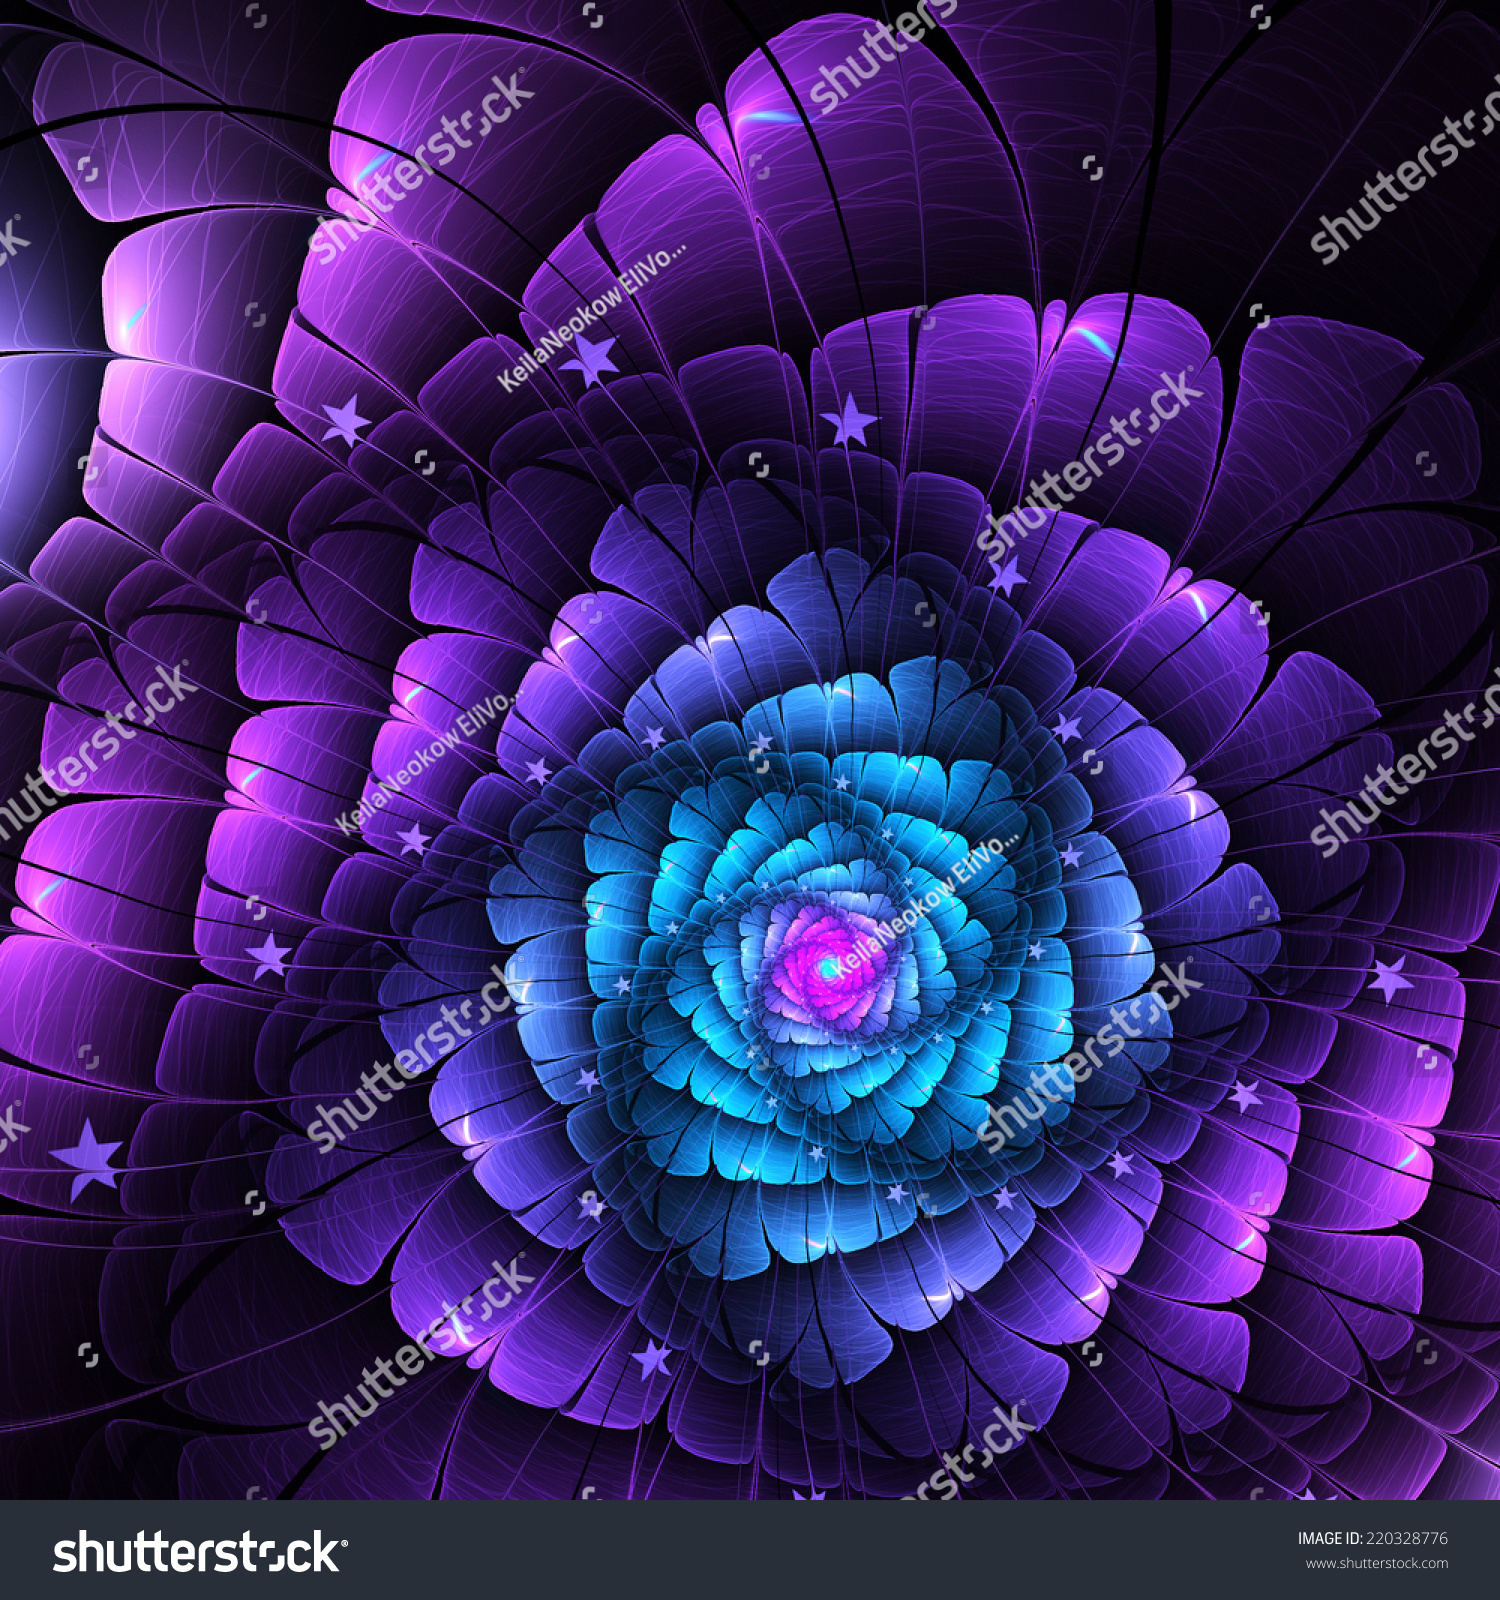 Dark blue purple fractal flower digital stock illustration 220328776 dark blue and purple fractal flower digital artwork for creative graphic design izmirmasajfo Image collections